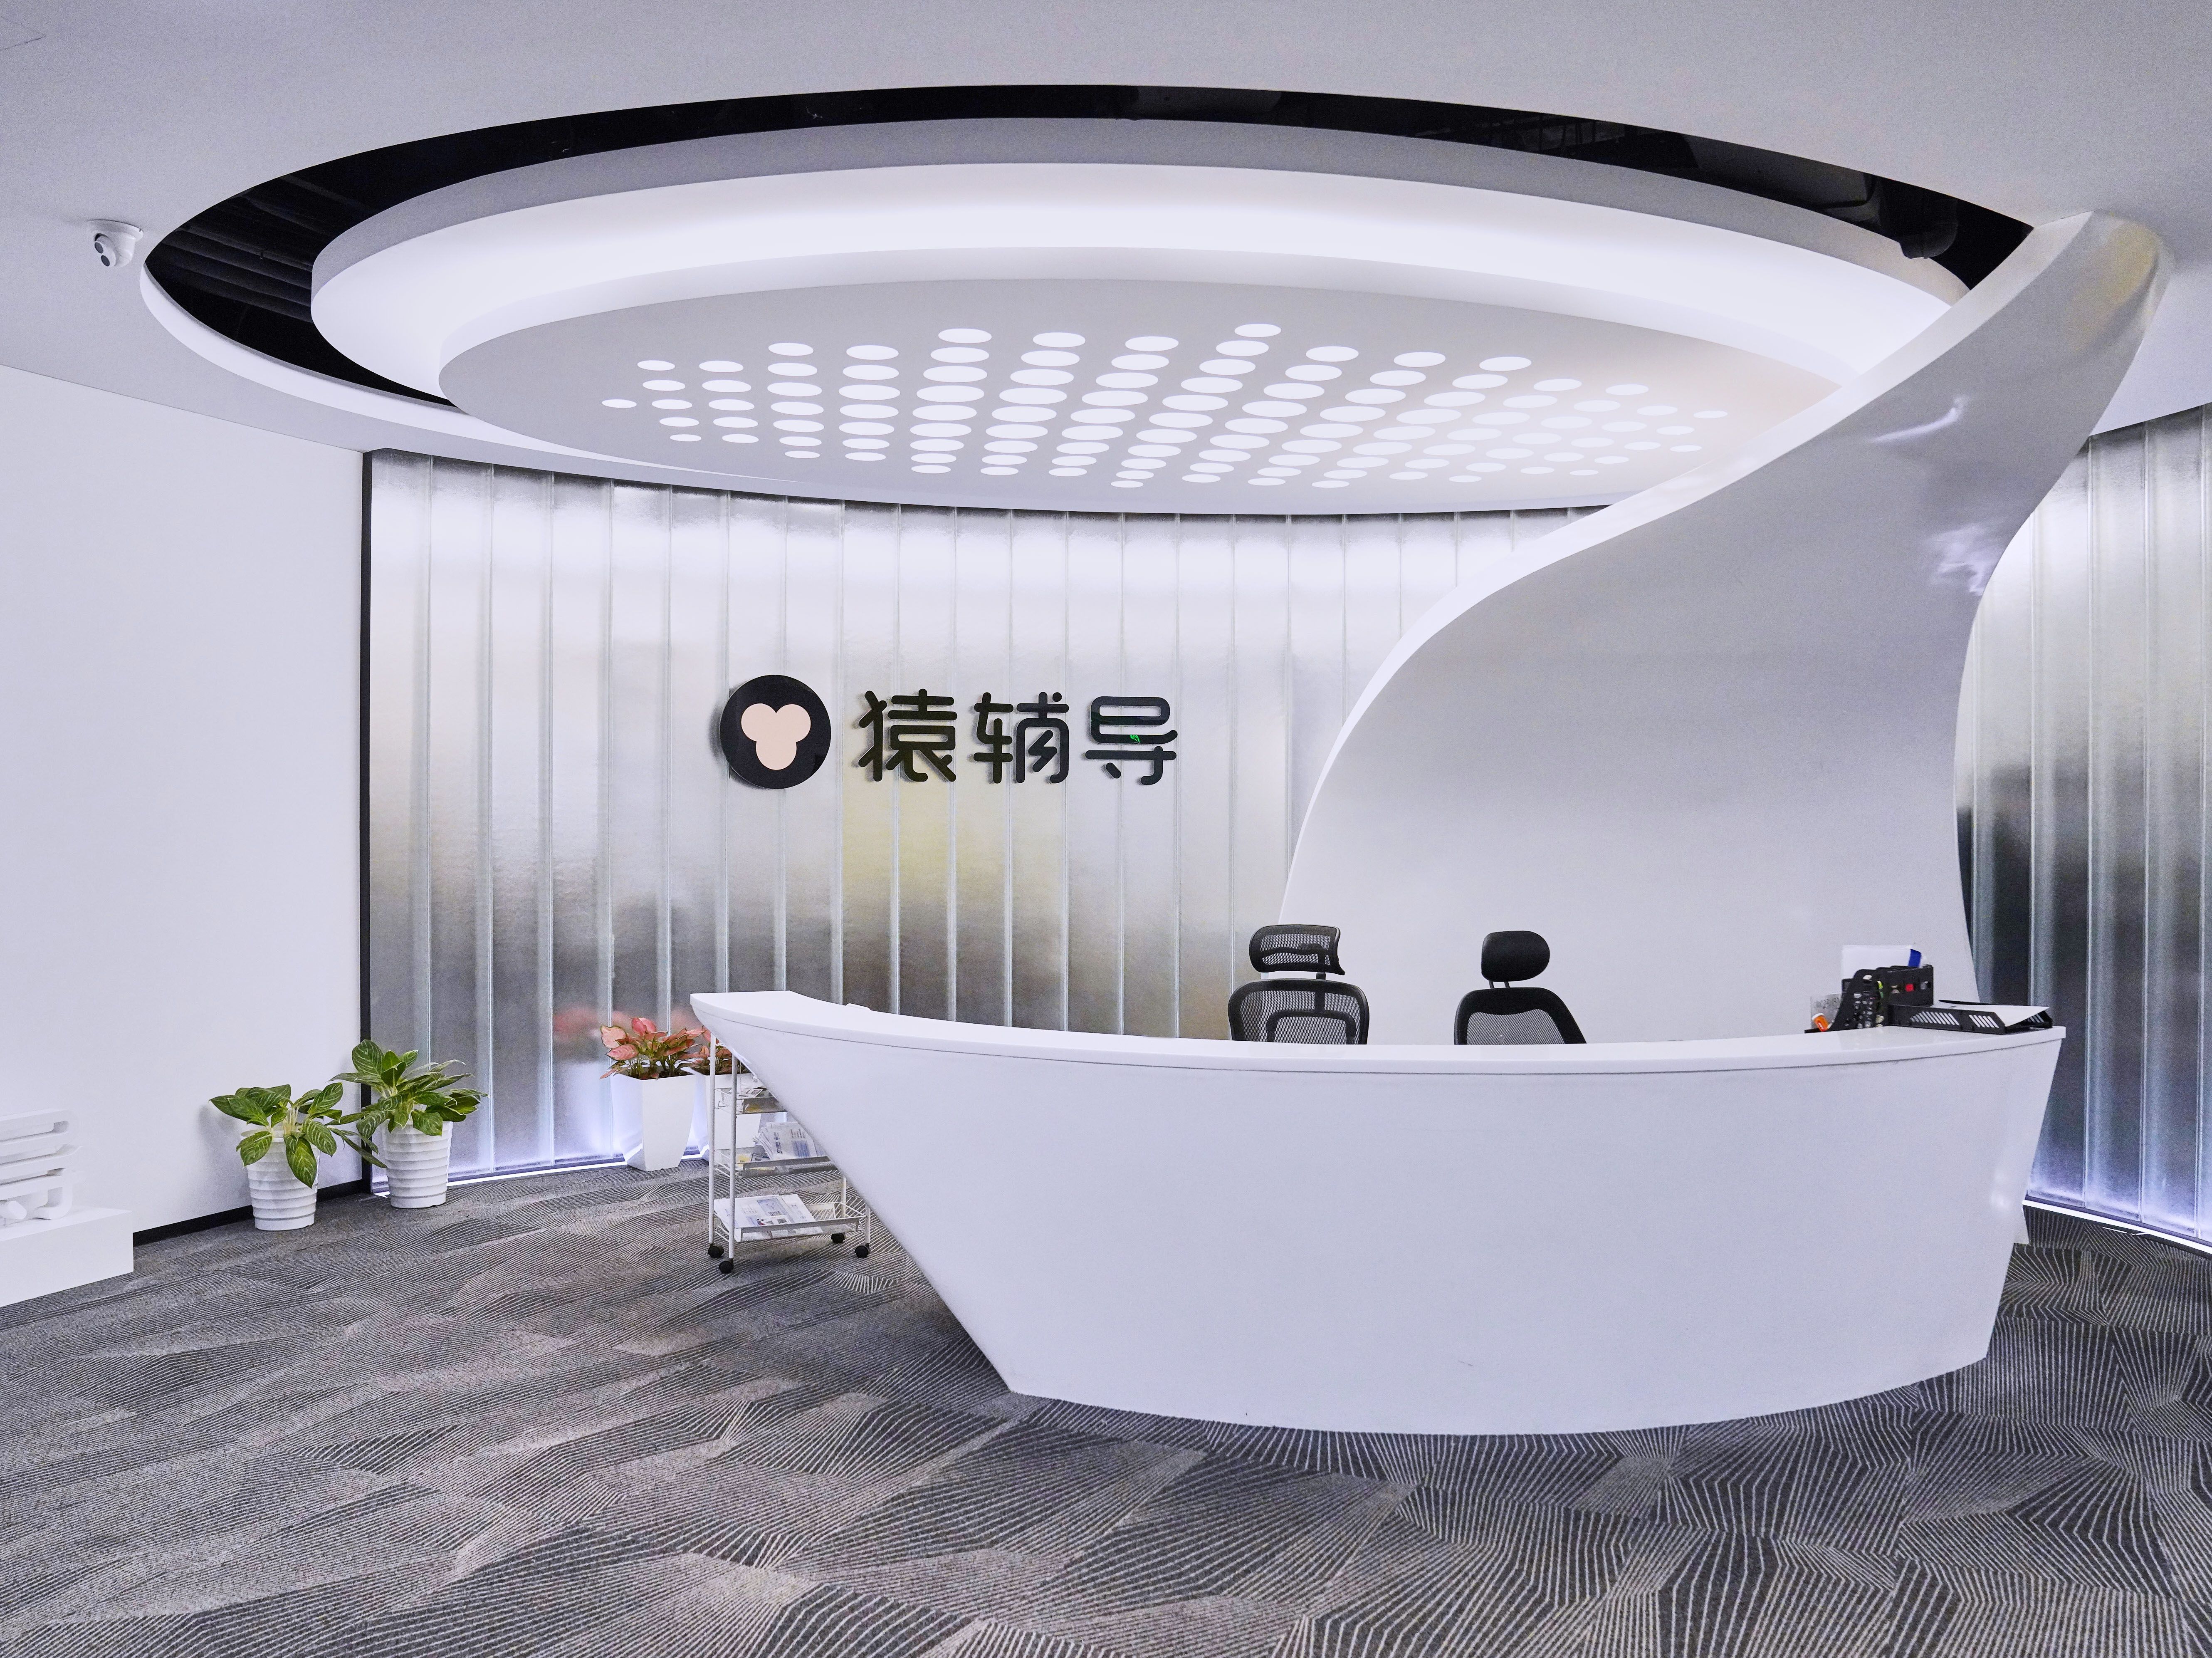 Chinese startup Yuanfudao just secured new investment. The company is based in Beijing and has over 15,000 employees.